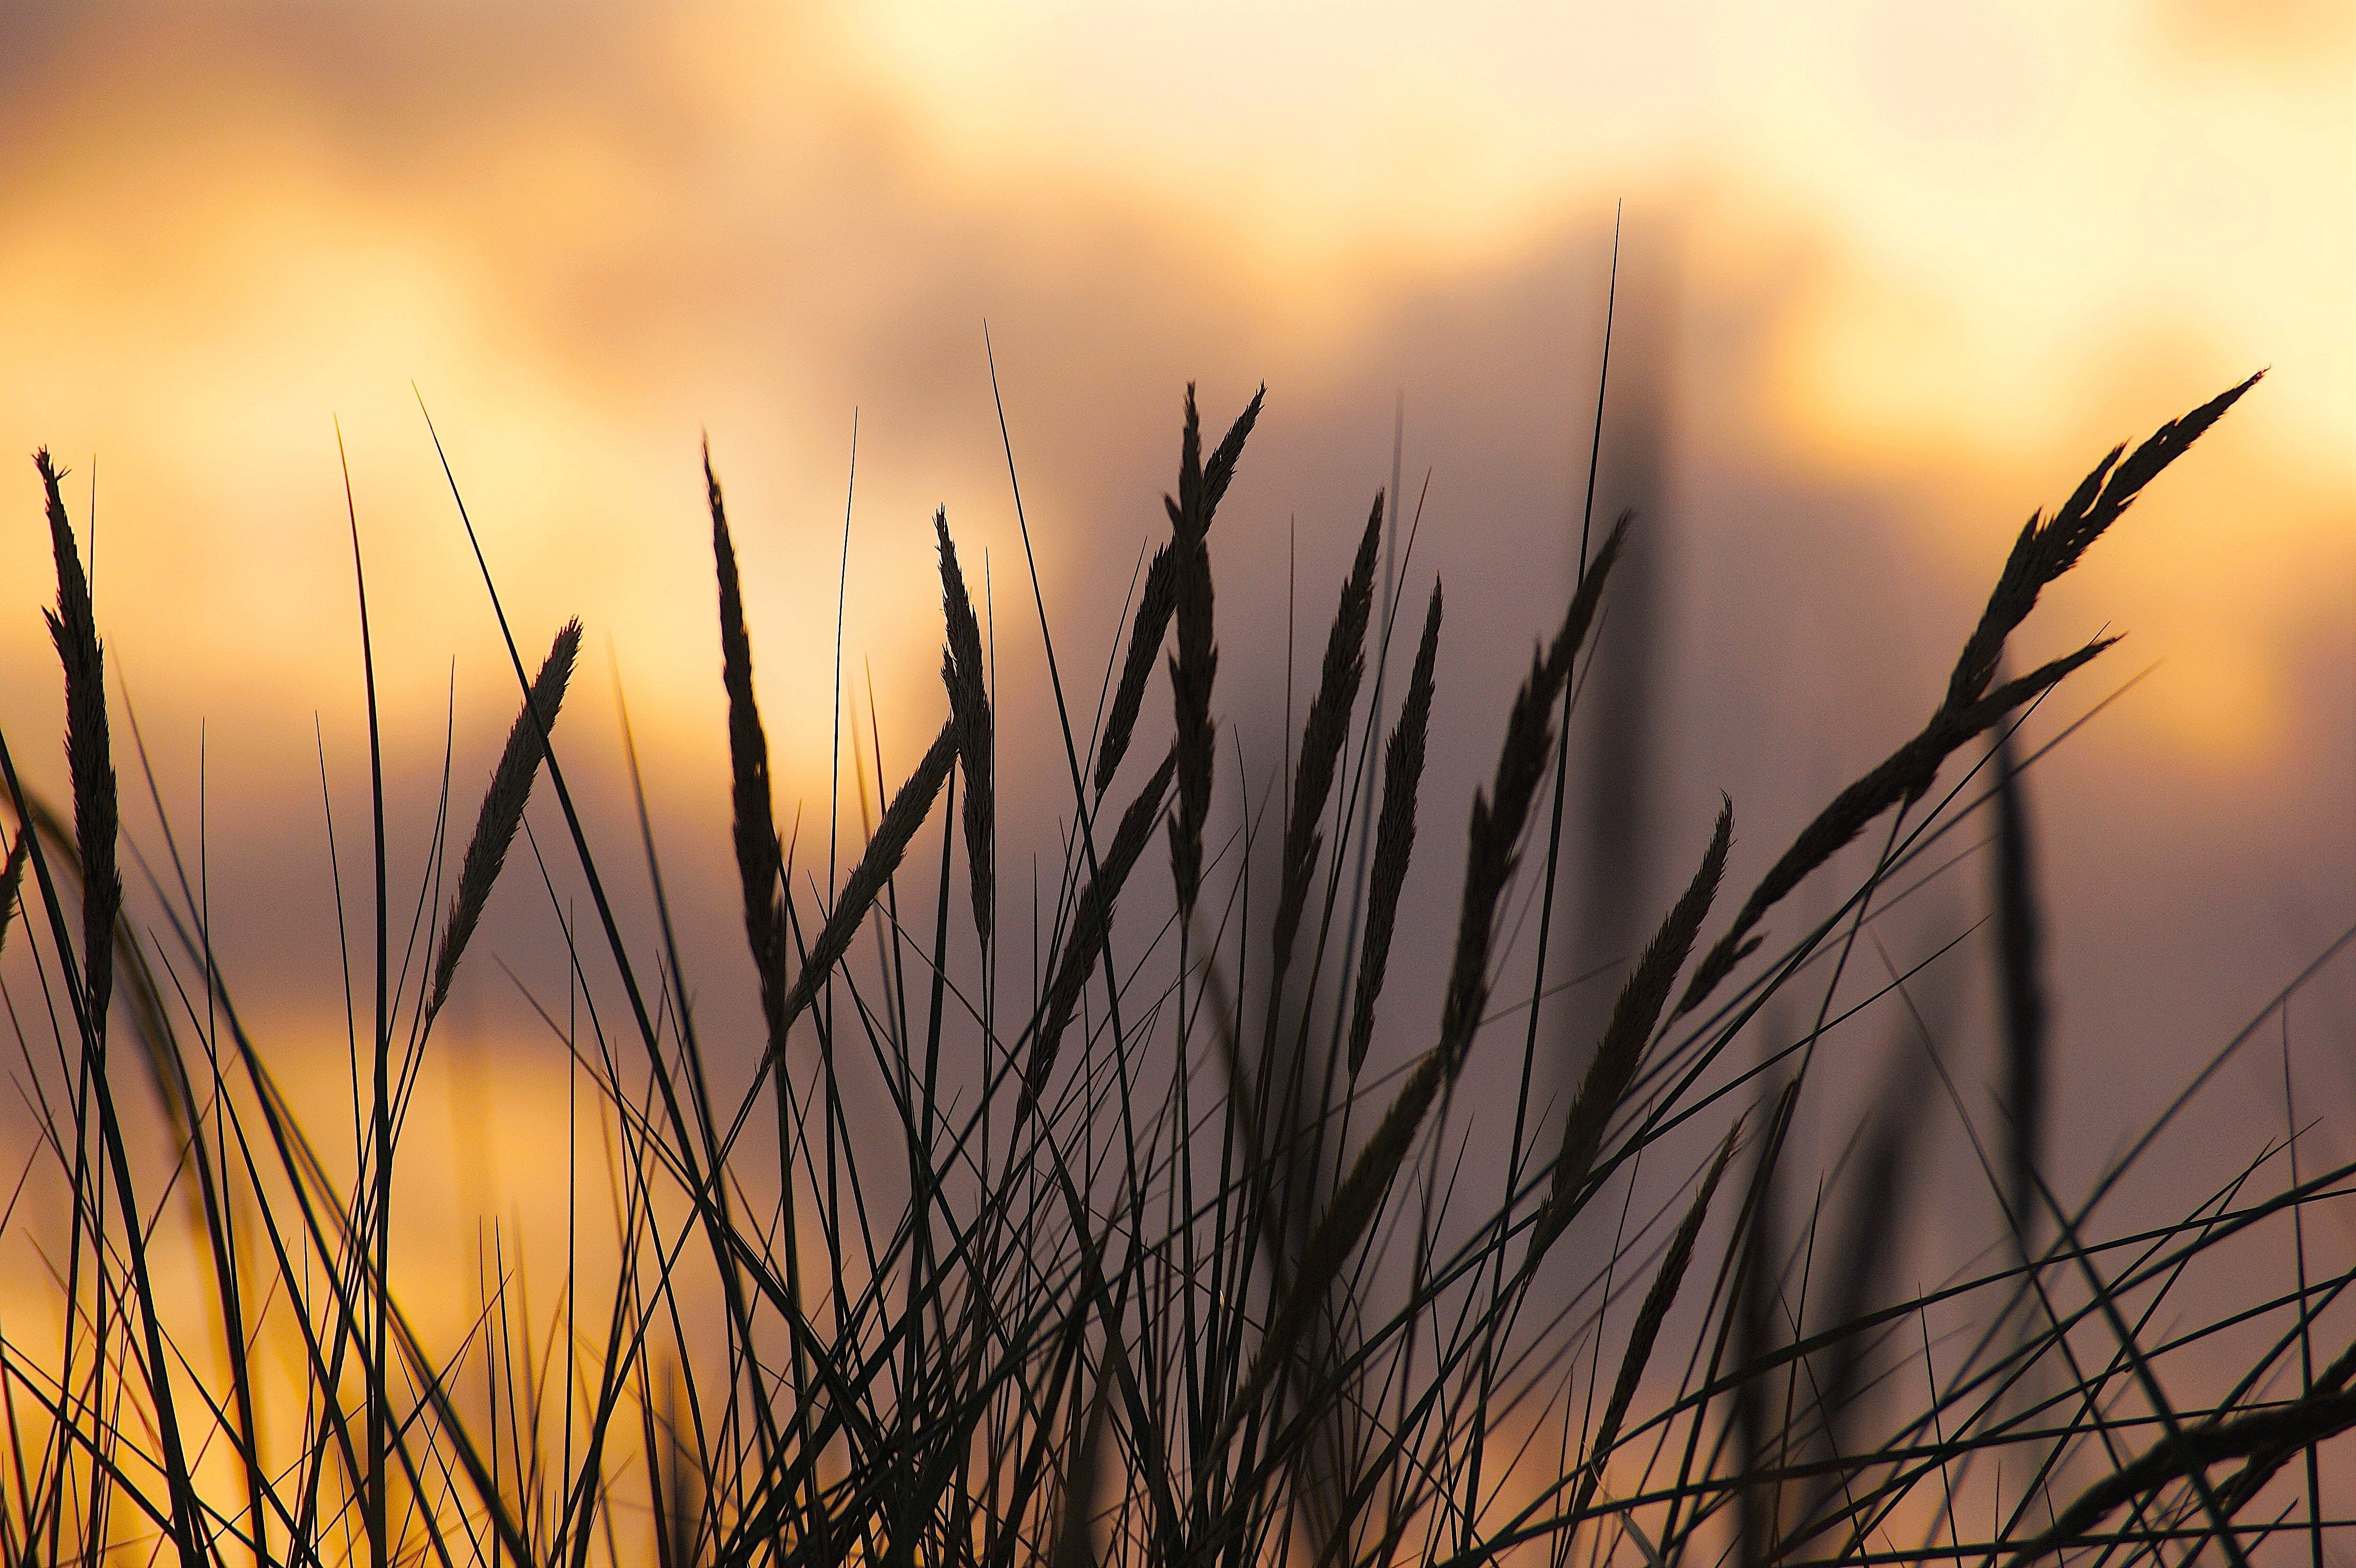 Silhouette Photo of Wheat during Sunset